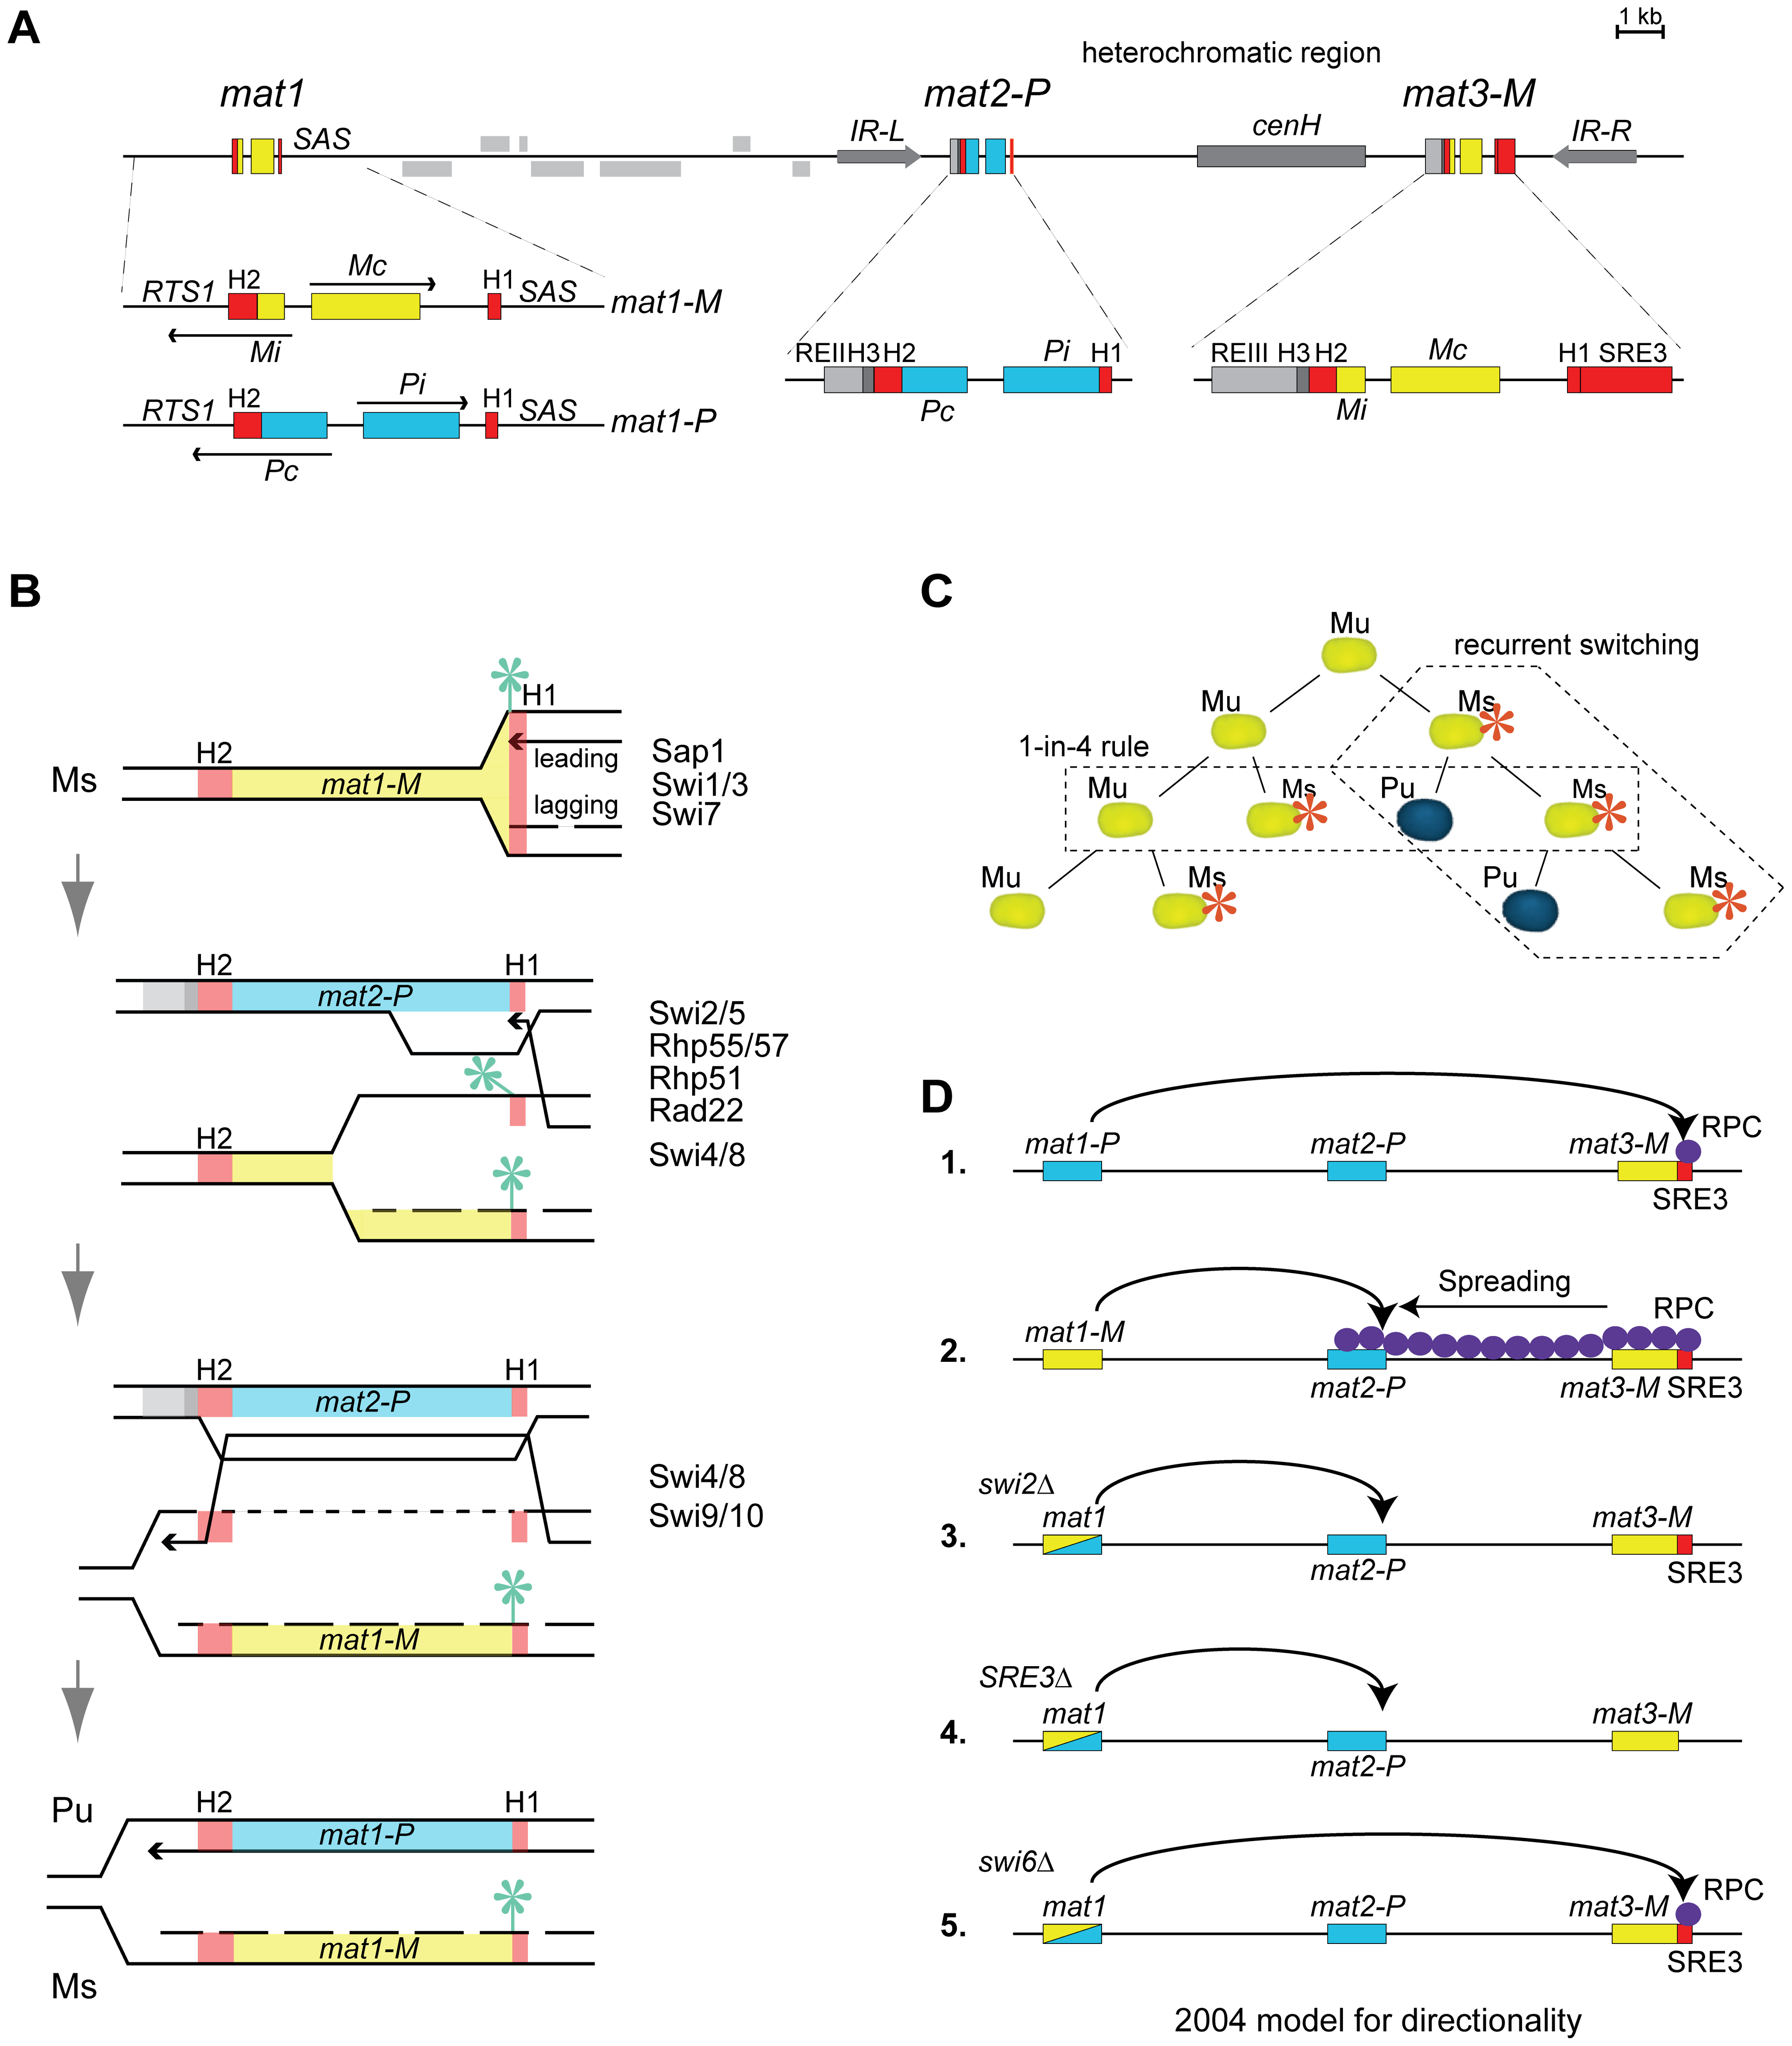 Mating-type region and mating-type switching in <i>S. pombe</i>.